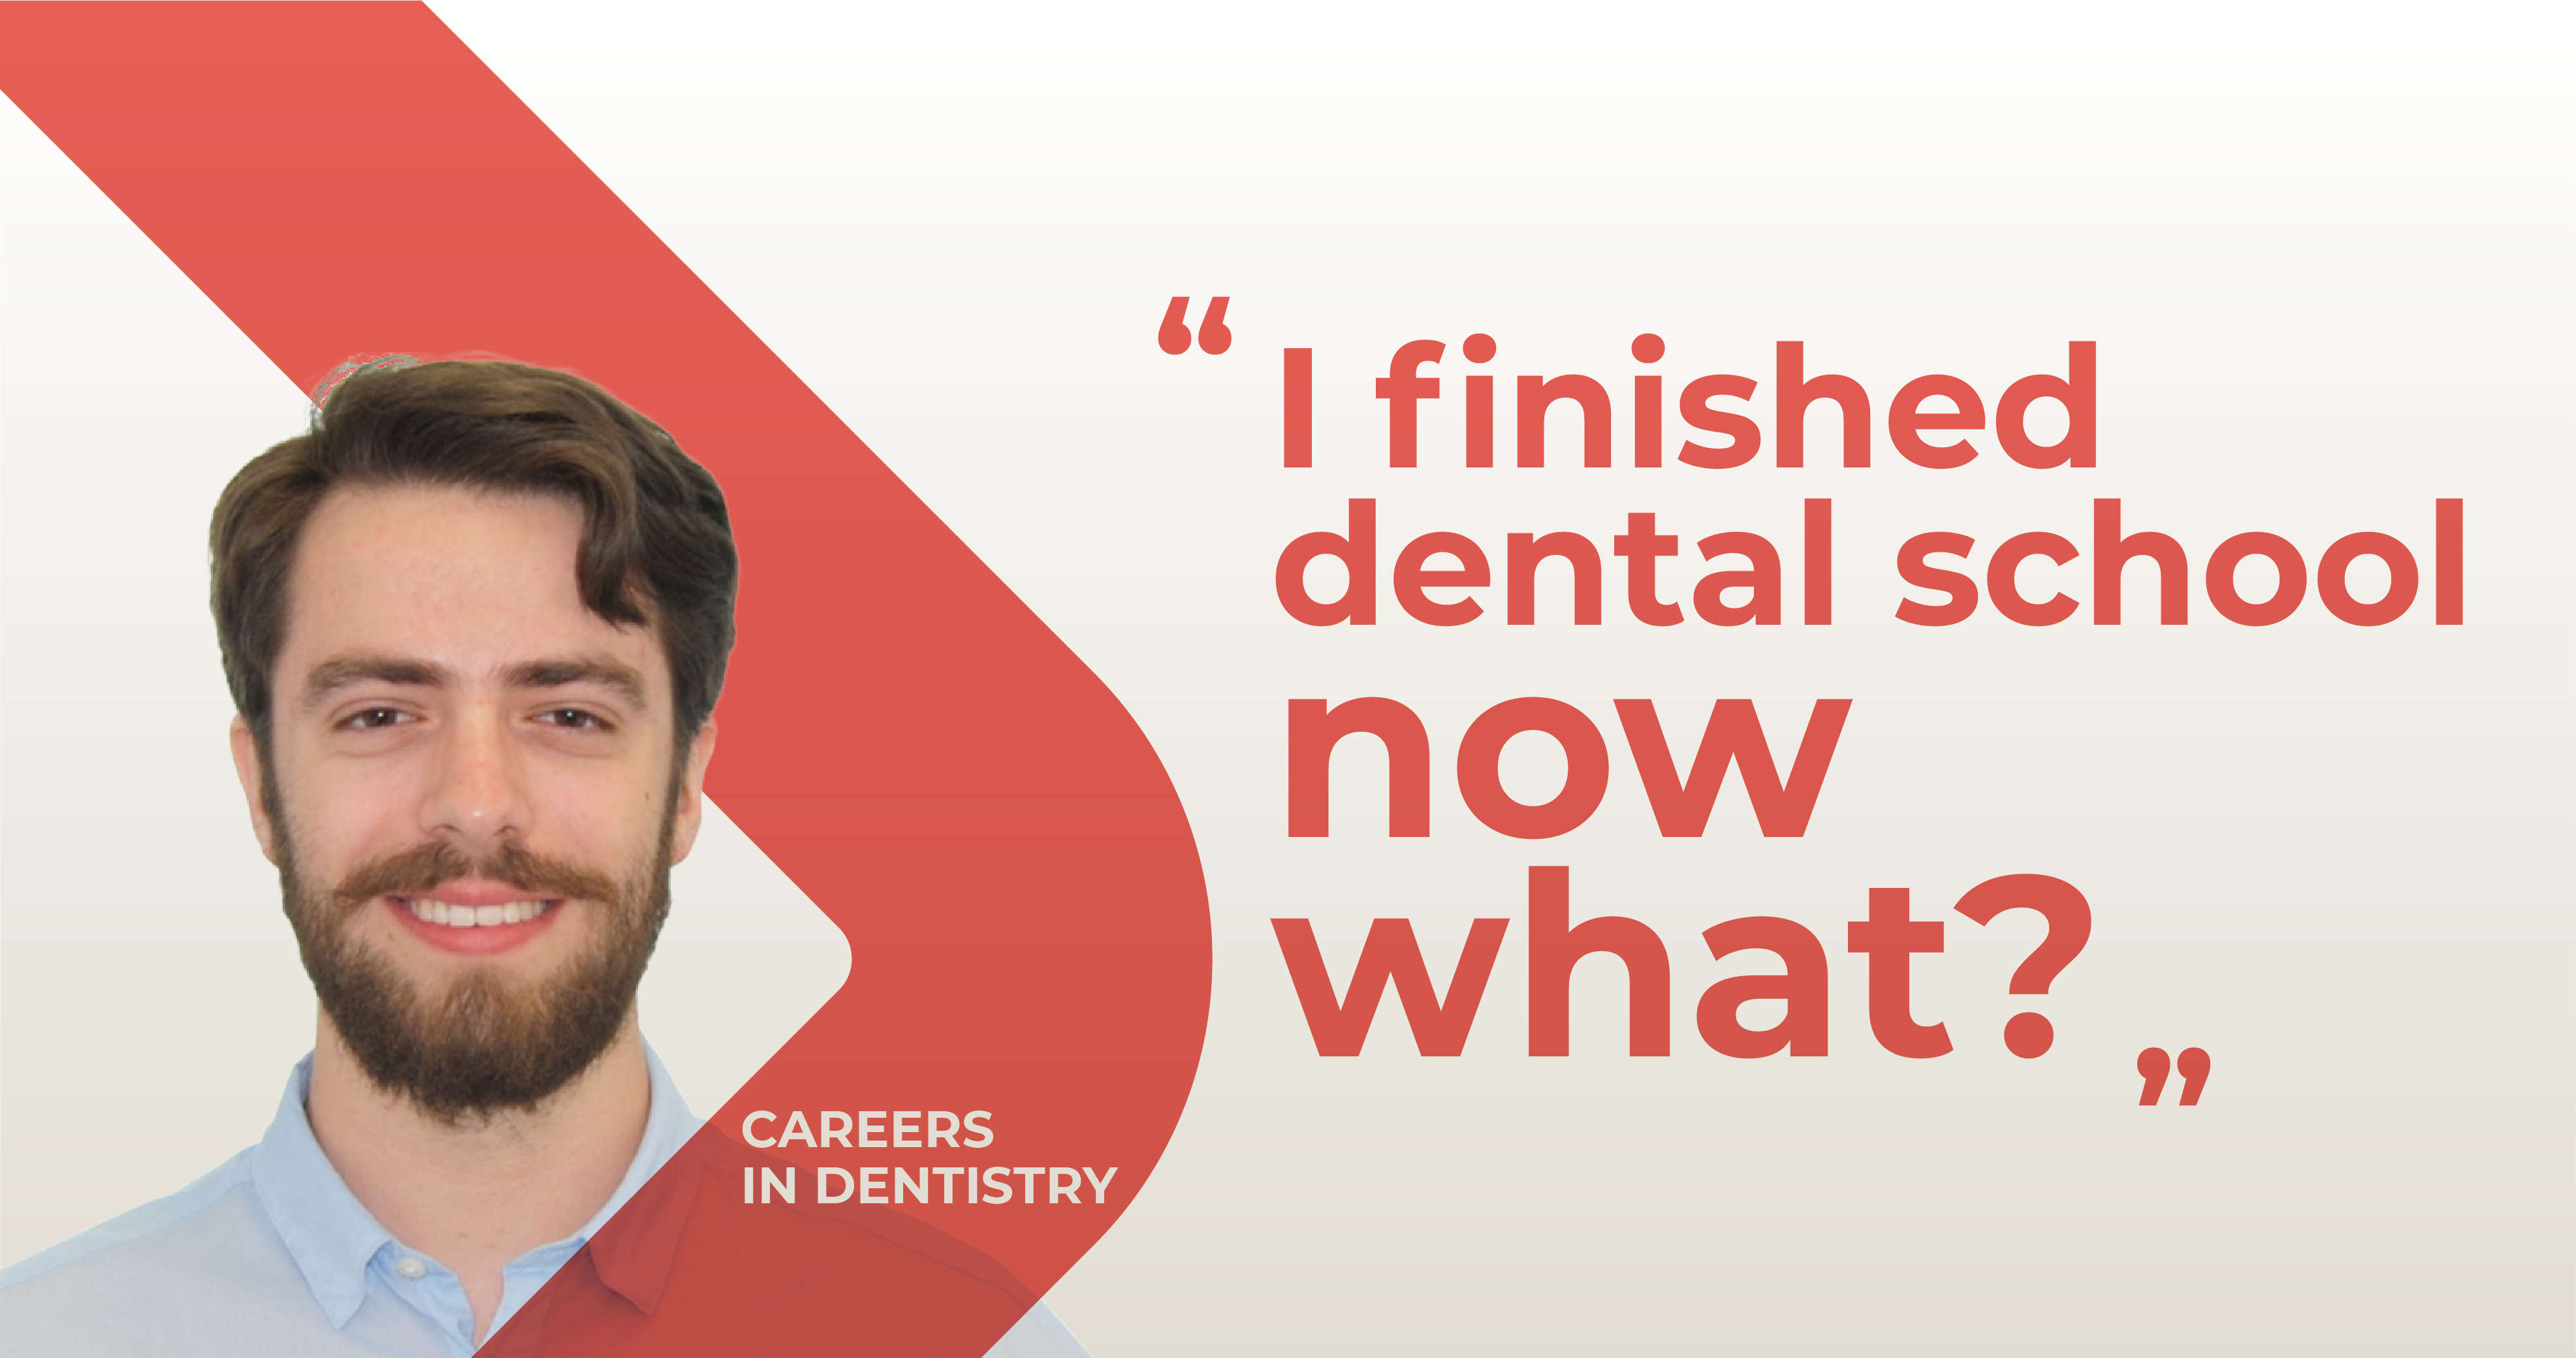 Careers in Dentistry Series Dr. Serban Sirca finishing dental school and finding the right fit in dentistry